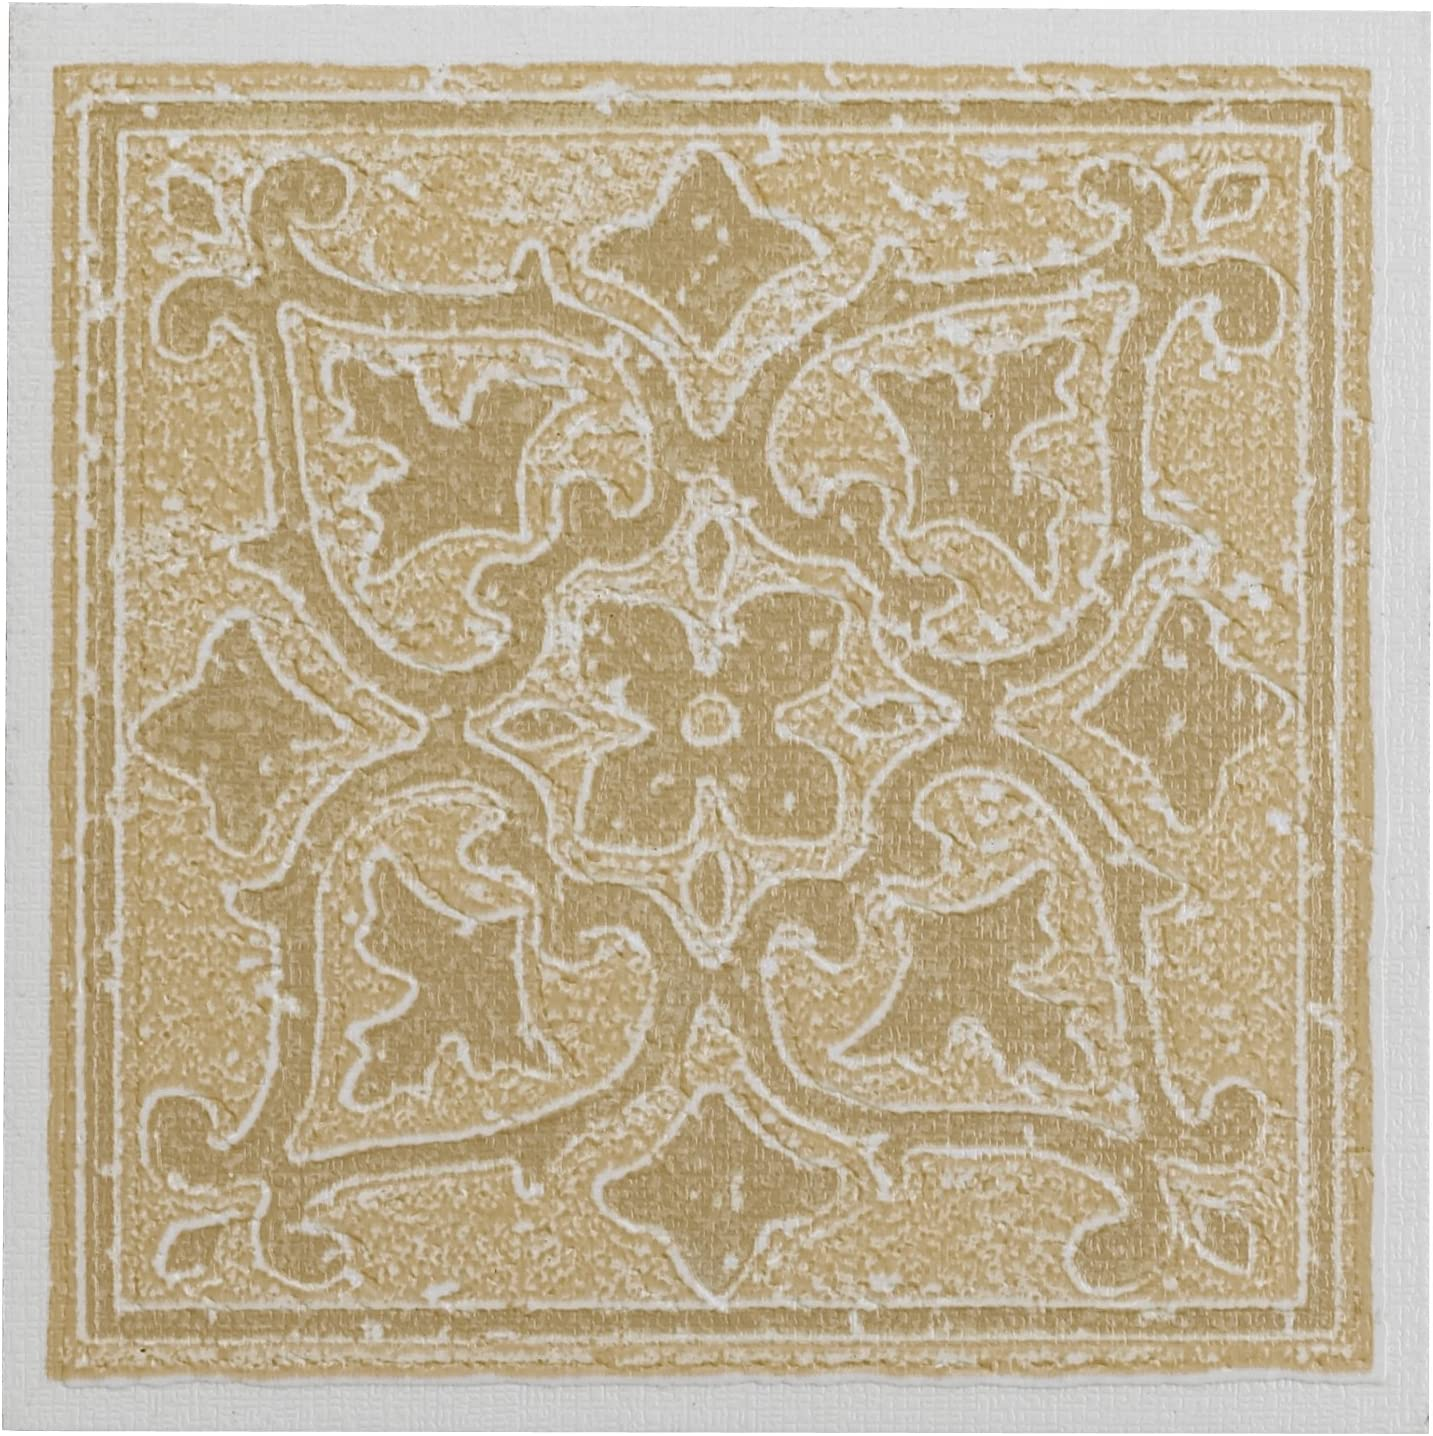 Achim Home Furnishings WTV401AC10 Nexus Accent Wall Tile, 4 by 4-inch, Sandstone, 27-Pack